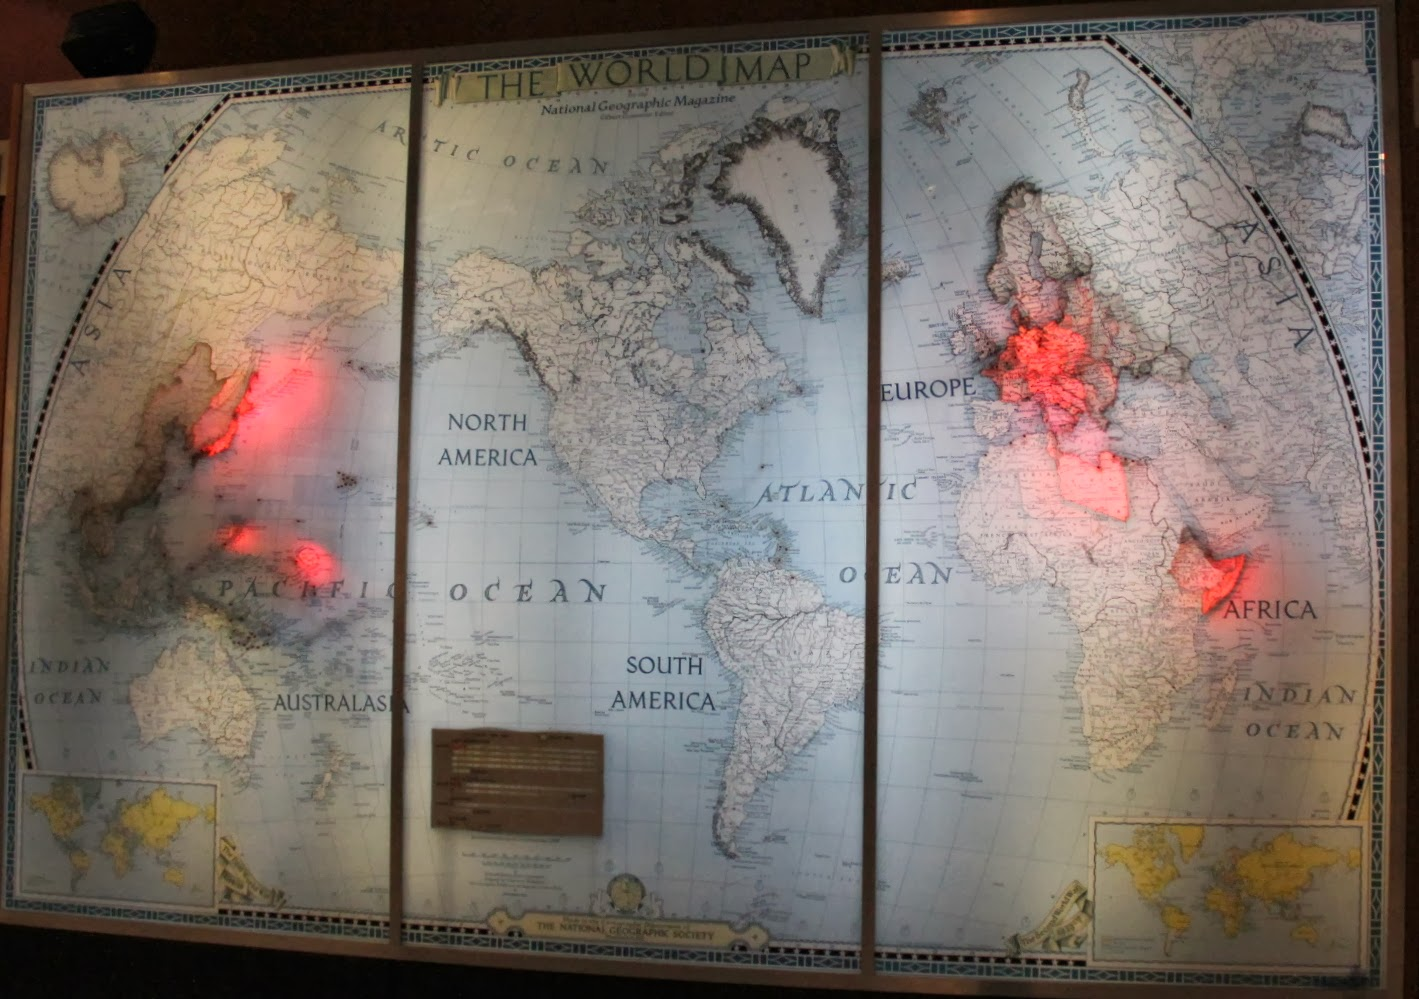 there is a very interesting display giving the timeline history of world war ii it is done by way of a huge national geographic map of the world